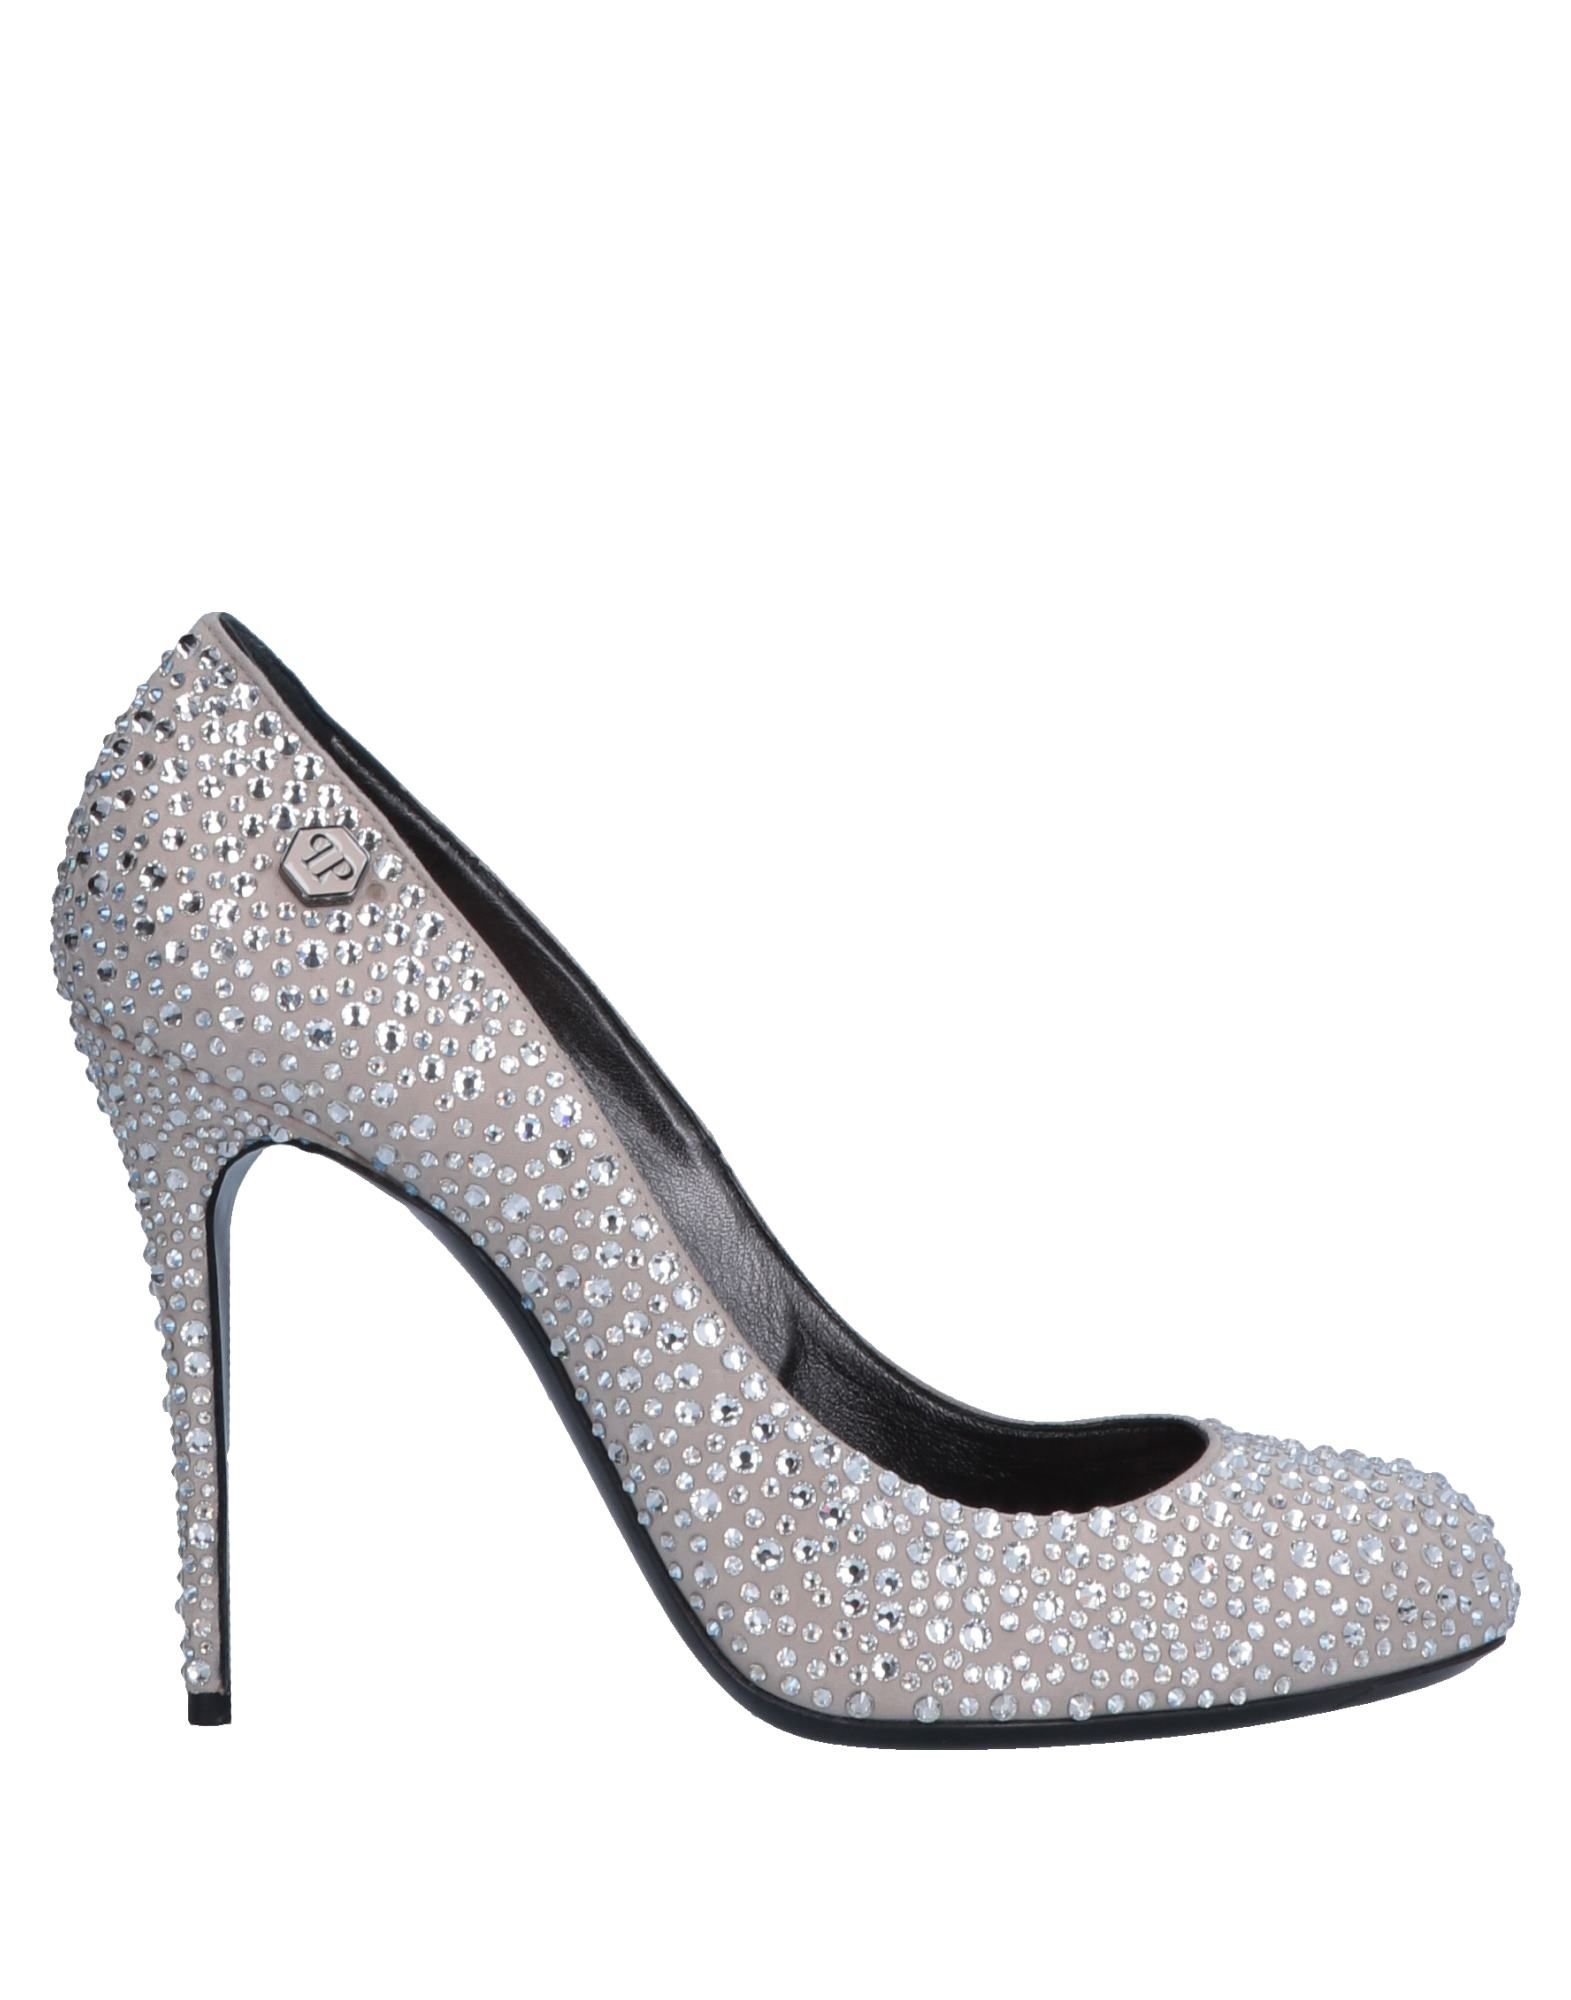 Rabatt Schuhe Philipp Plein Pumps Damen  11563963IF